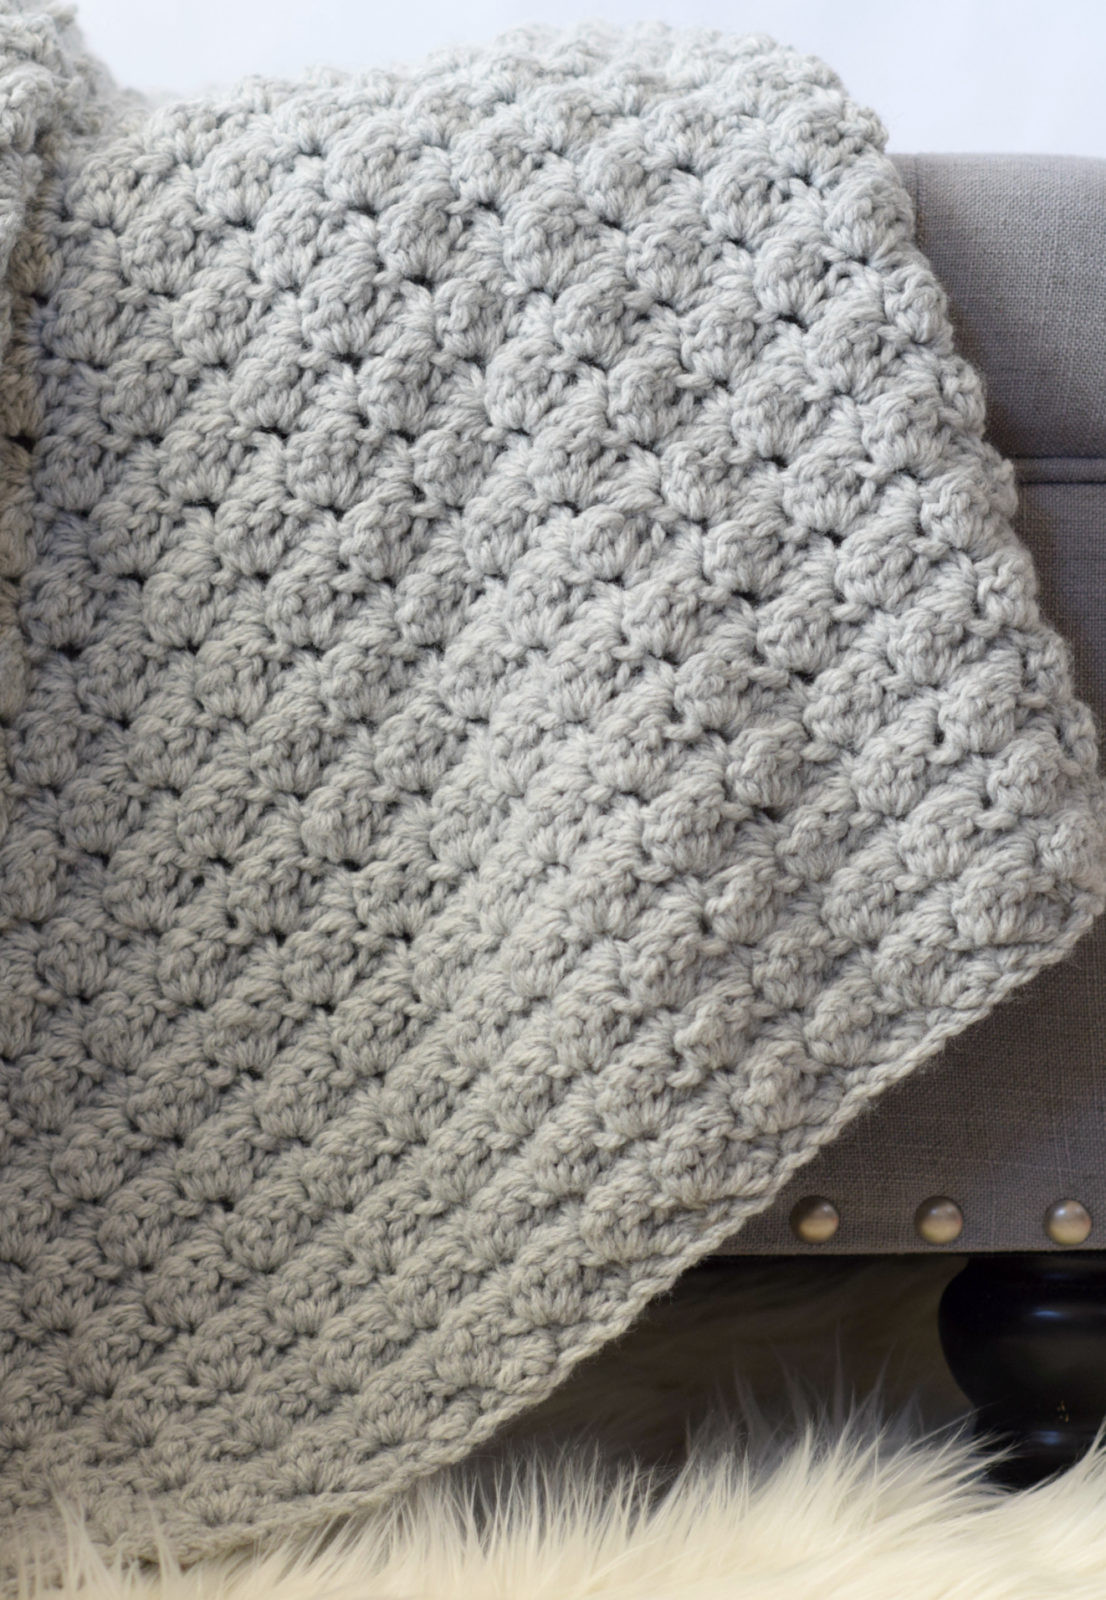 Free Crochet Blanket Patterns New Simple Crocheted Blanket Go to Pattern – Mama In A Stitch Of Superb 44 Models Free Crochet Blanket Patterns